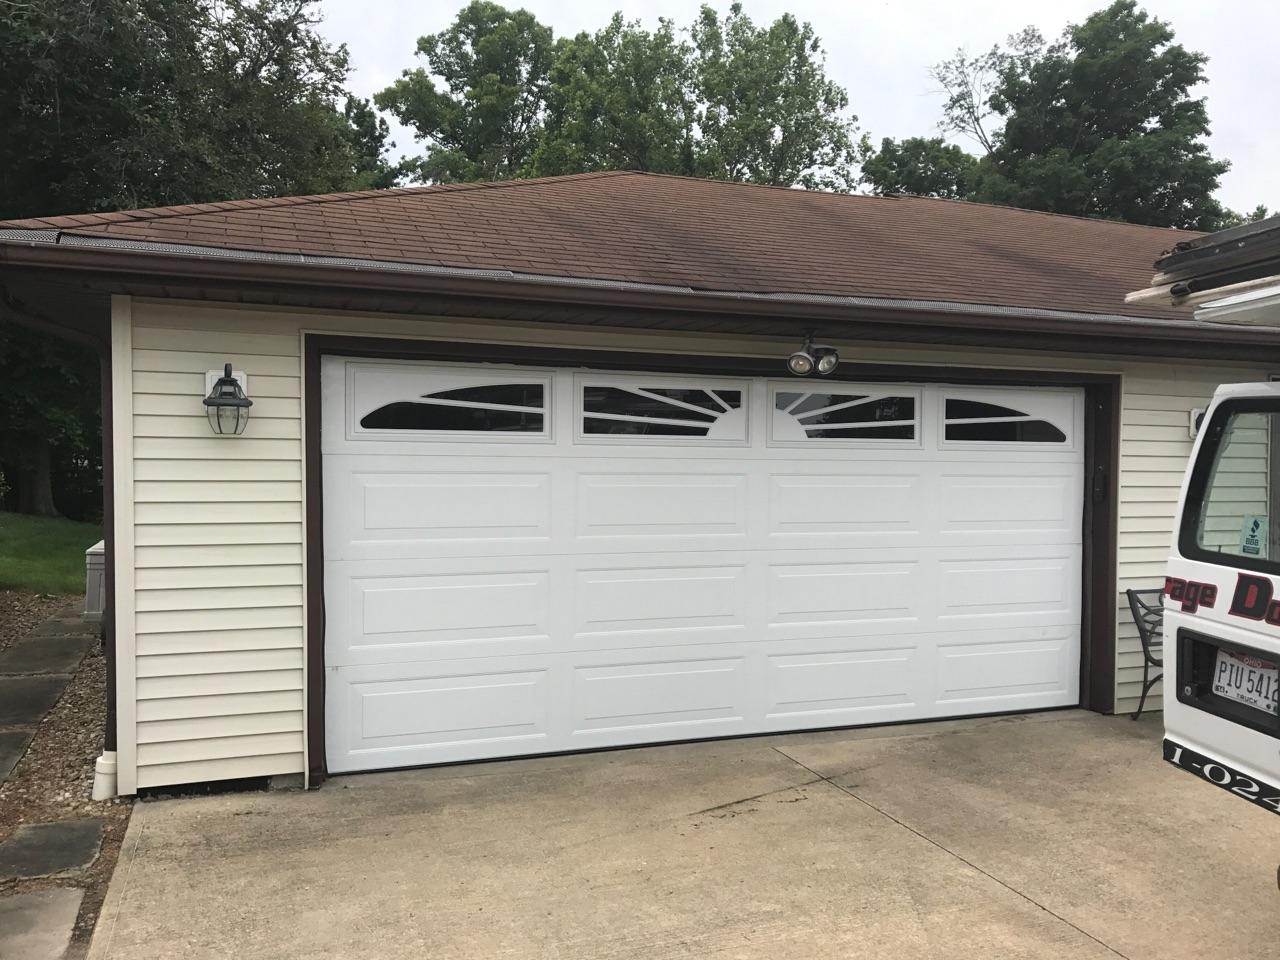 New replacement garage door installation by Kent Garage Doors & New Garage Door Installation | Old Garage Door Replacement New Doors